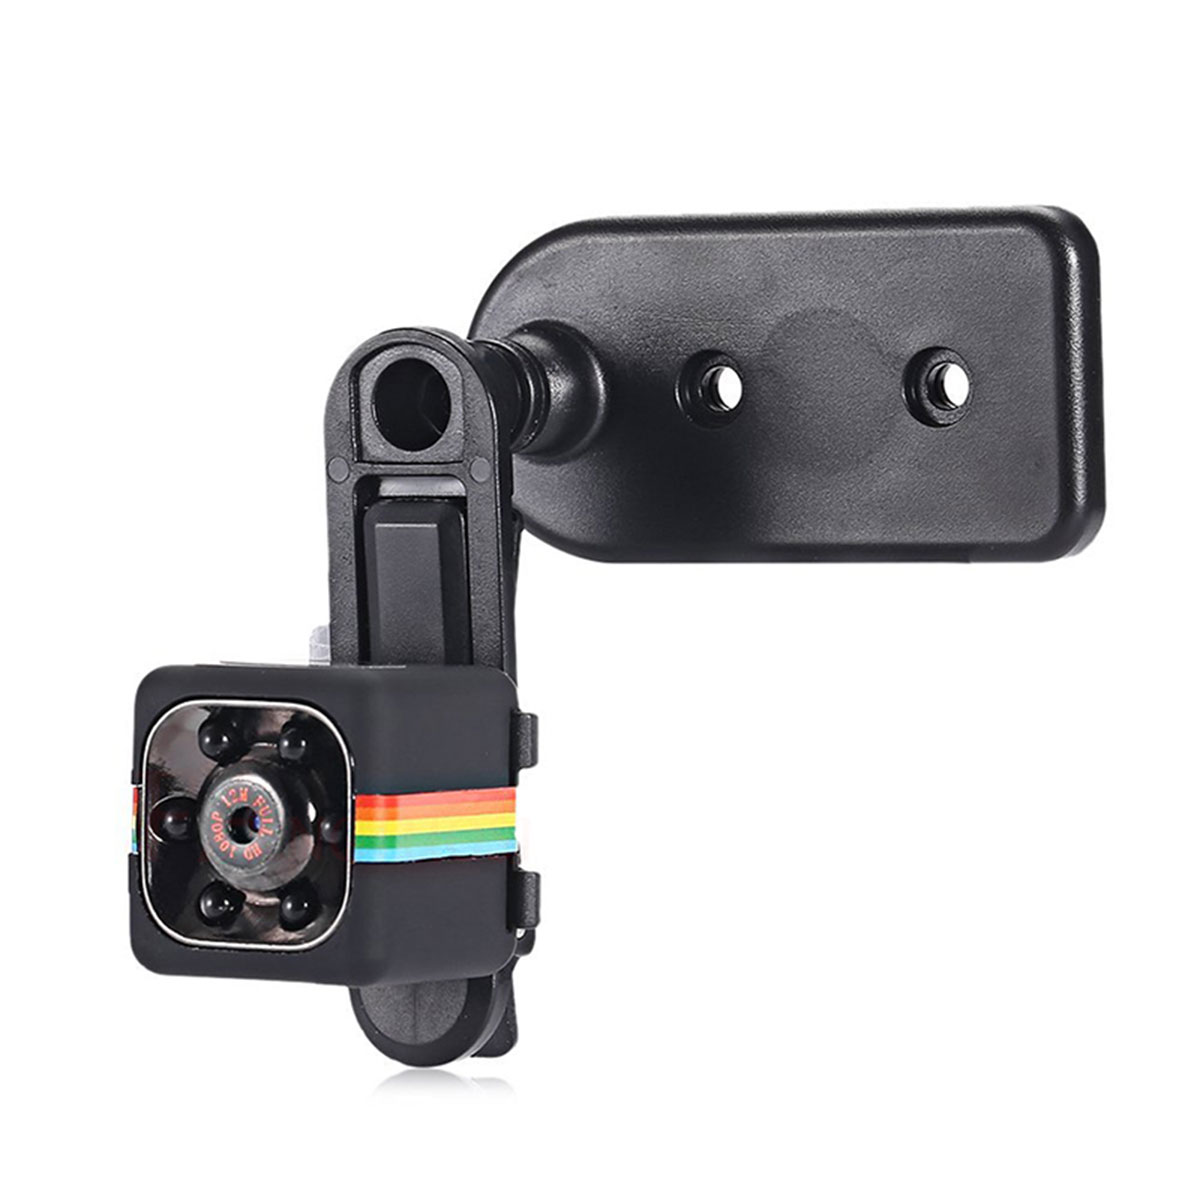 Image 2 - Original Mini Cam WIFI Camera SQ11 FULL HD 1080P Night Vision Waterproof Shell CMOS Sensor Recorder Camcorder Support TF Card-in Mini Camcorders from Consumer Electronics